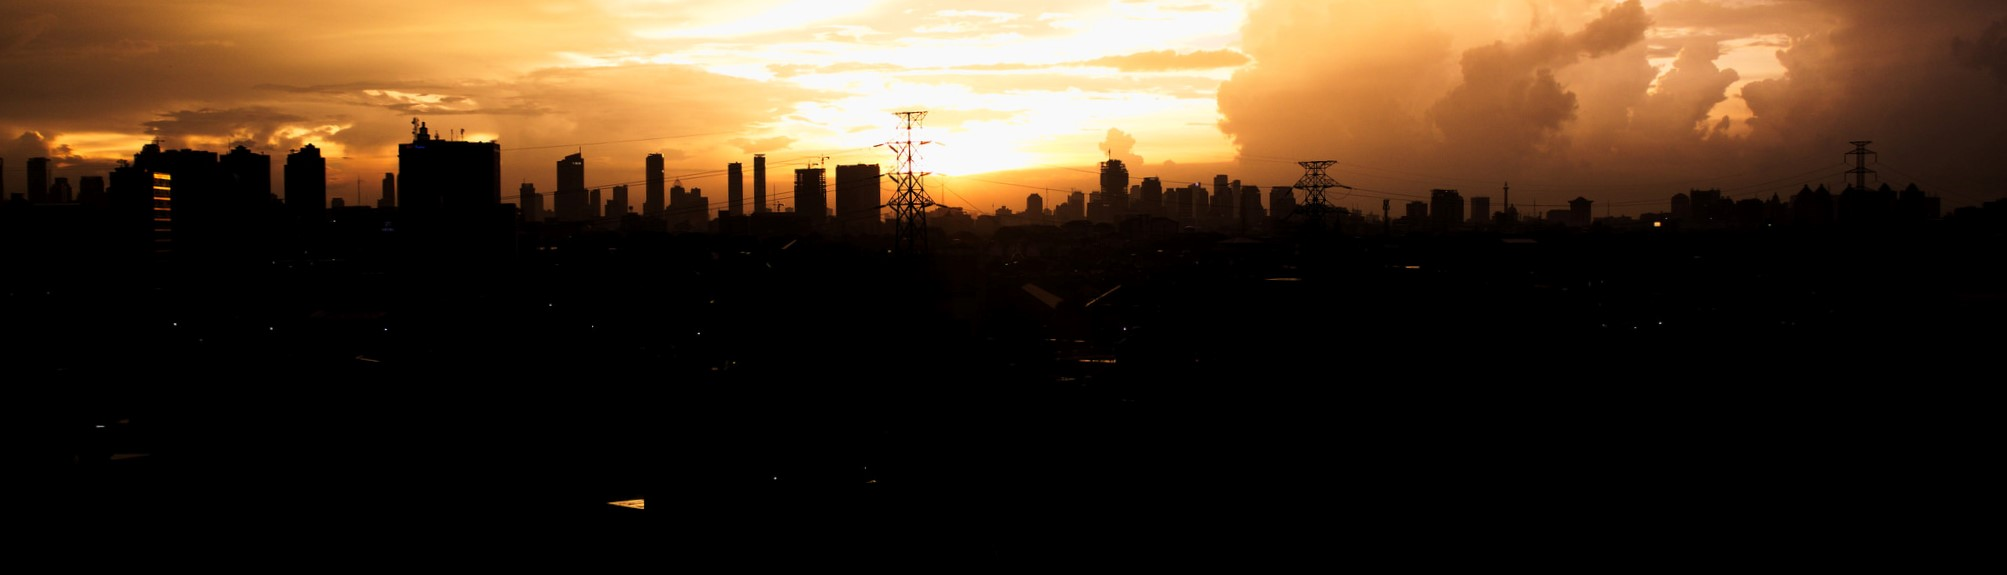 Sunset in Jakarta, March 2017 (Photo: Flickr/Heidy Tirta)